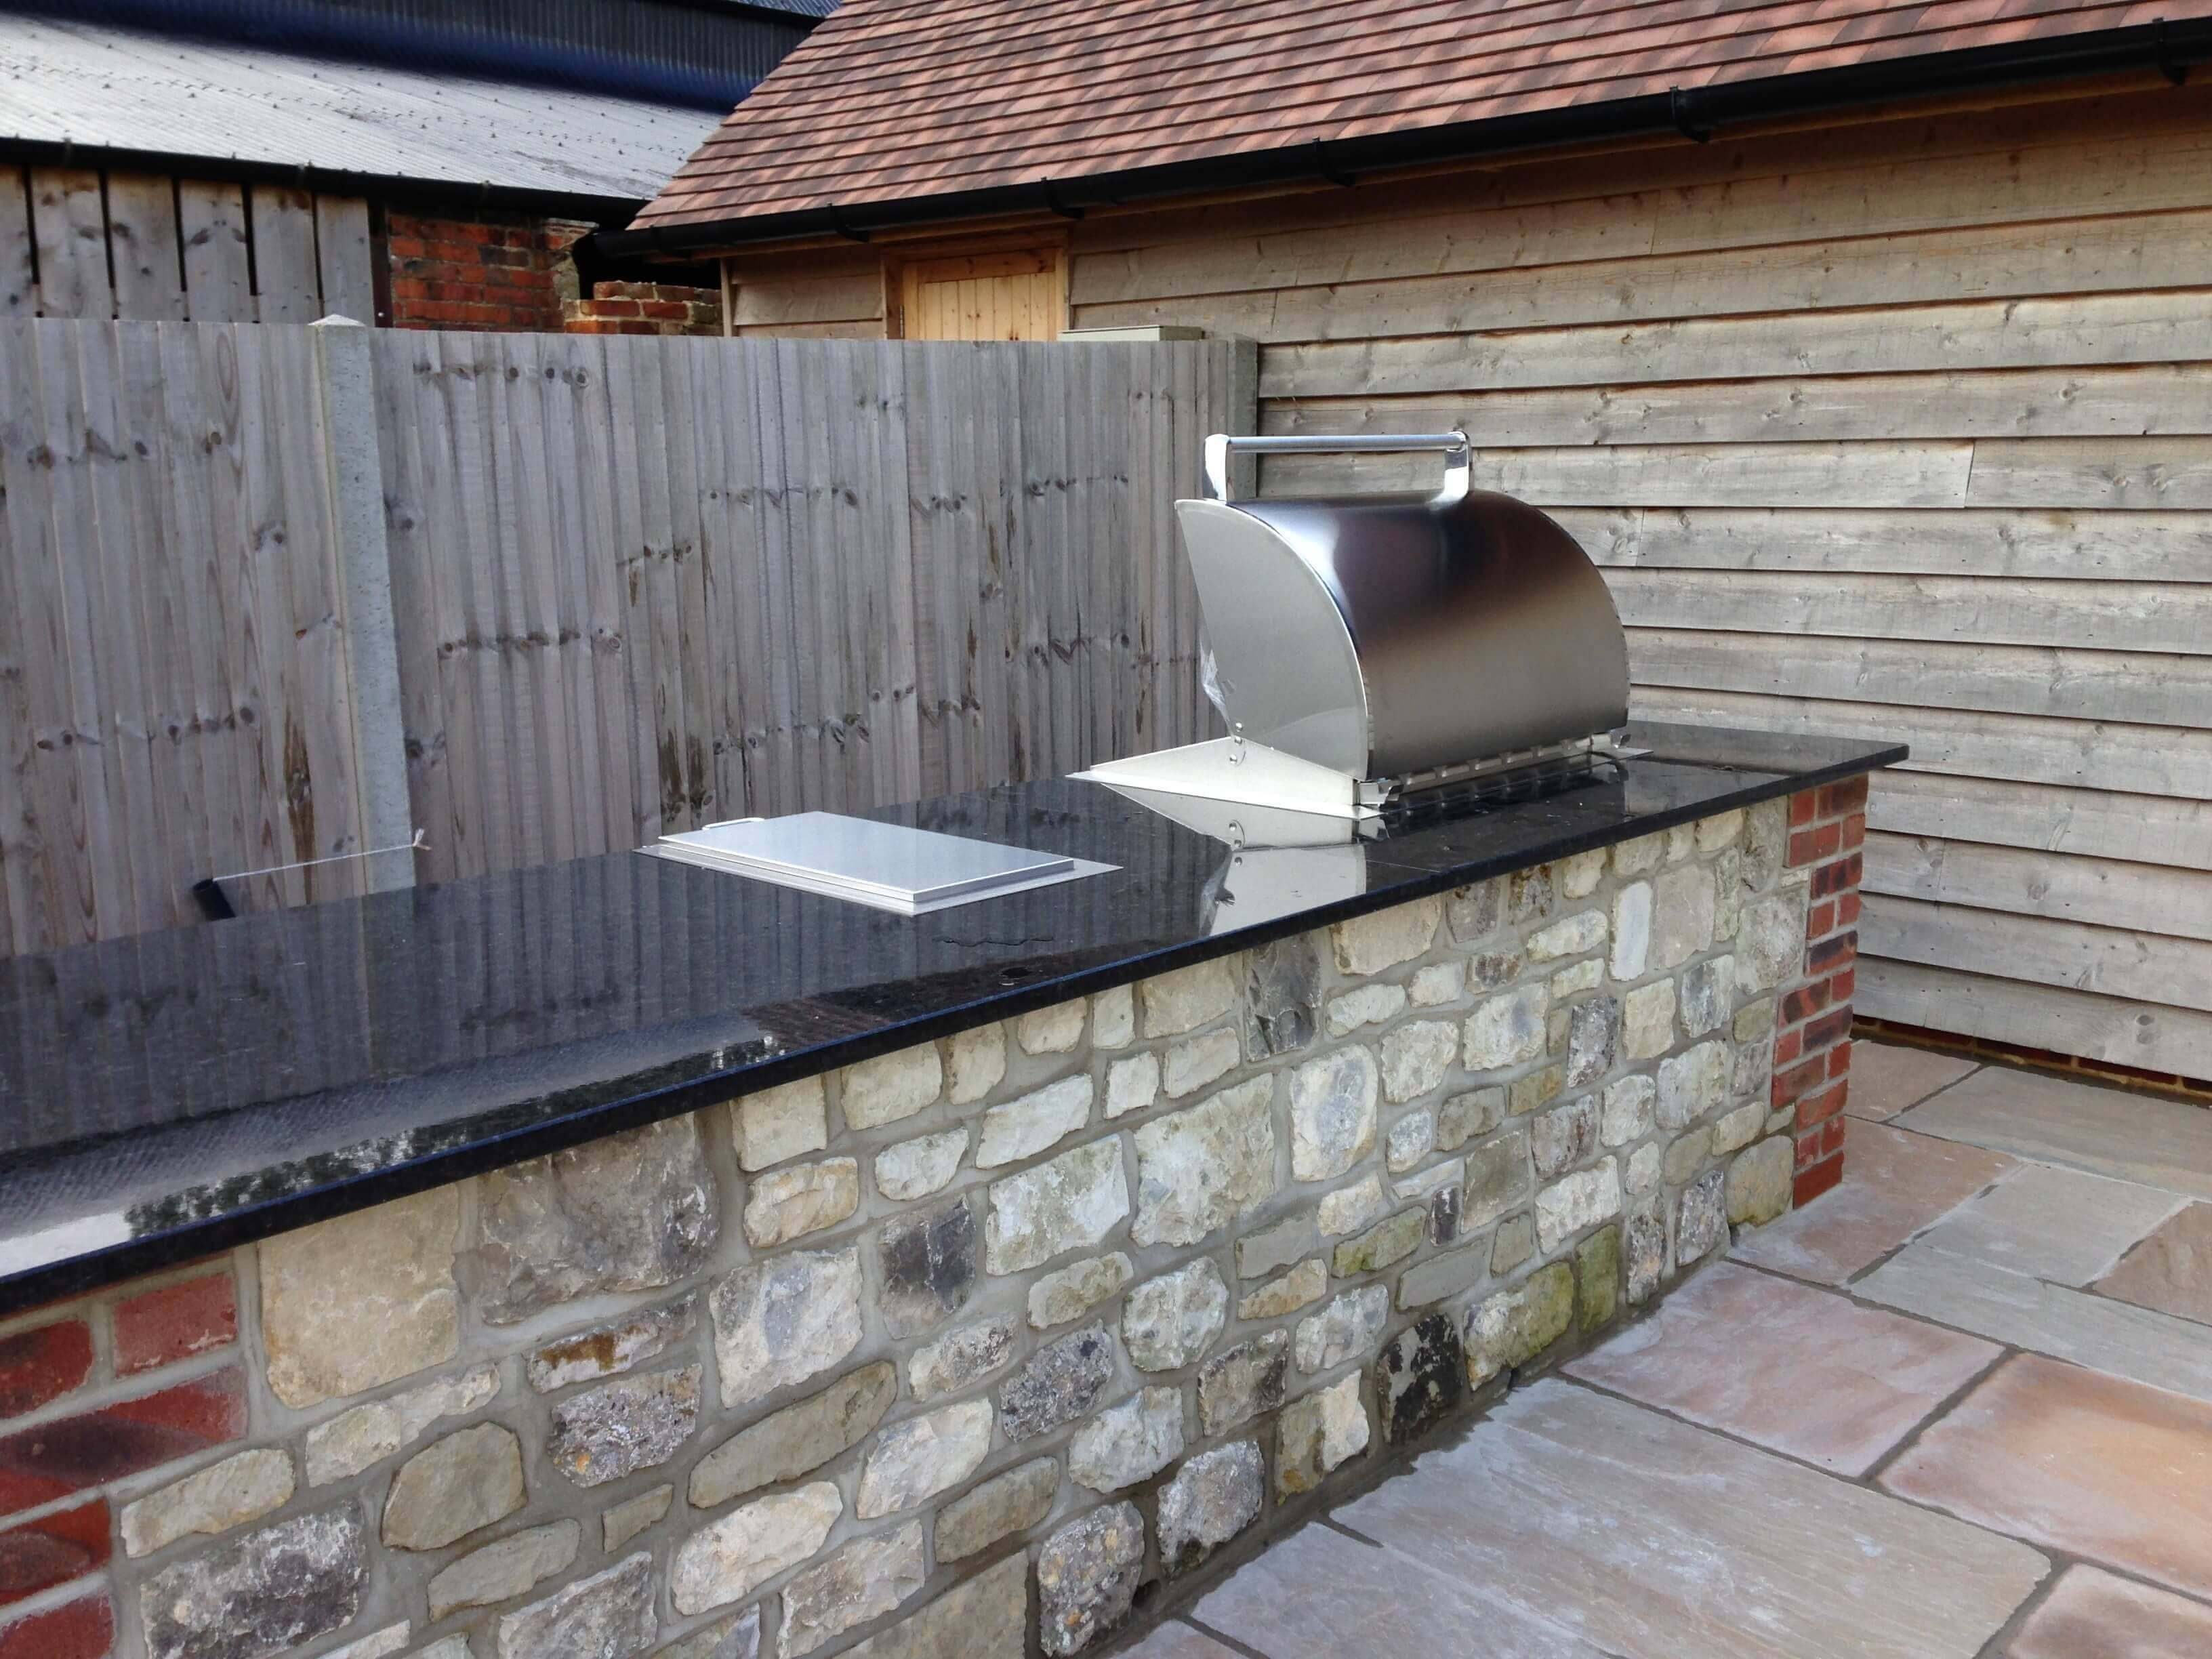 Image of: Winchester Outdoor Kitchens Fire Magic Bbqs Outdoor Kitchens In Pertaining To Fire Magic Outdoor Kitchen Grill Fire Magic Outdoor Kitchen